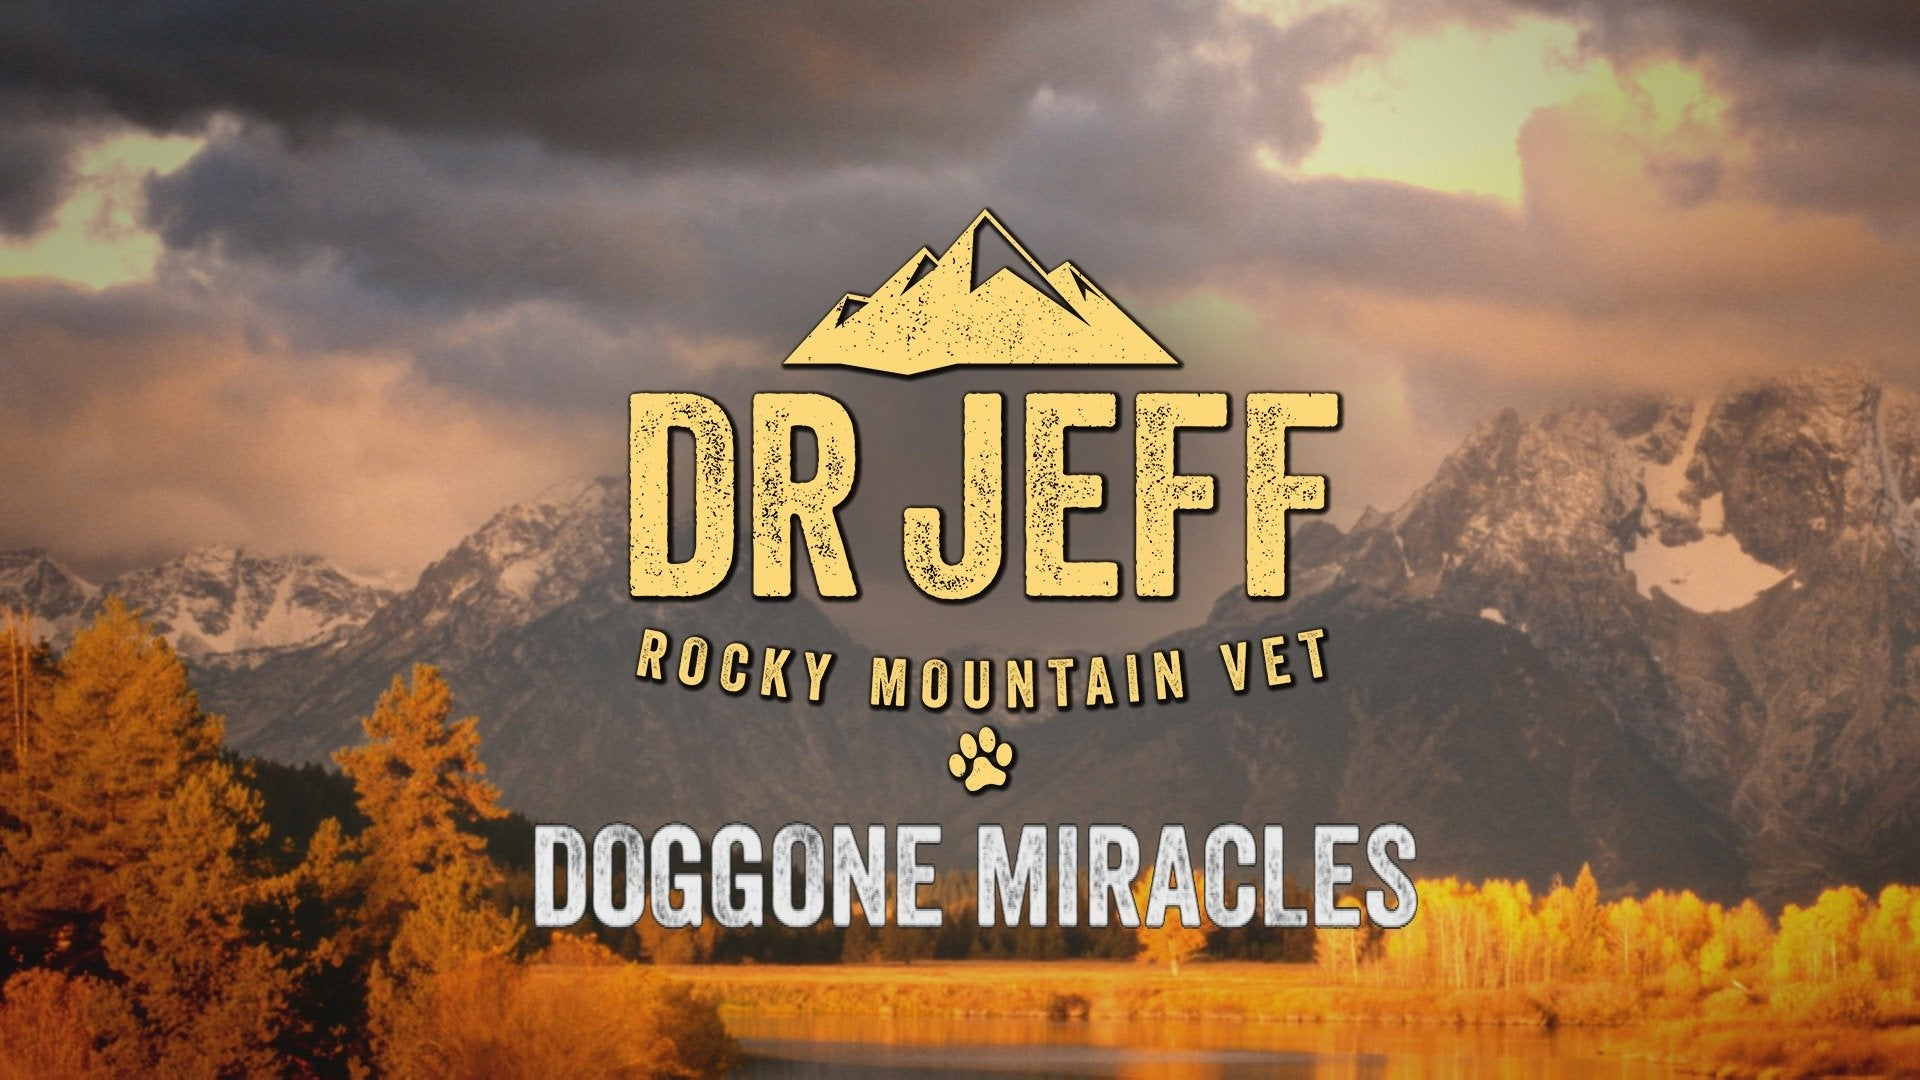 Dr. Jeff Rocky Mountain Vet: Doggone Miracles